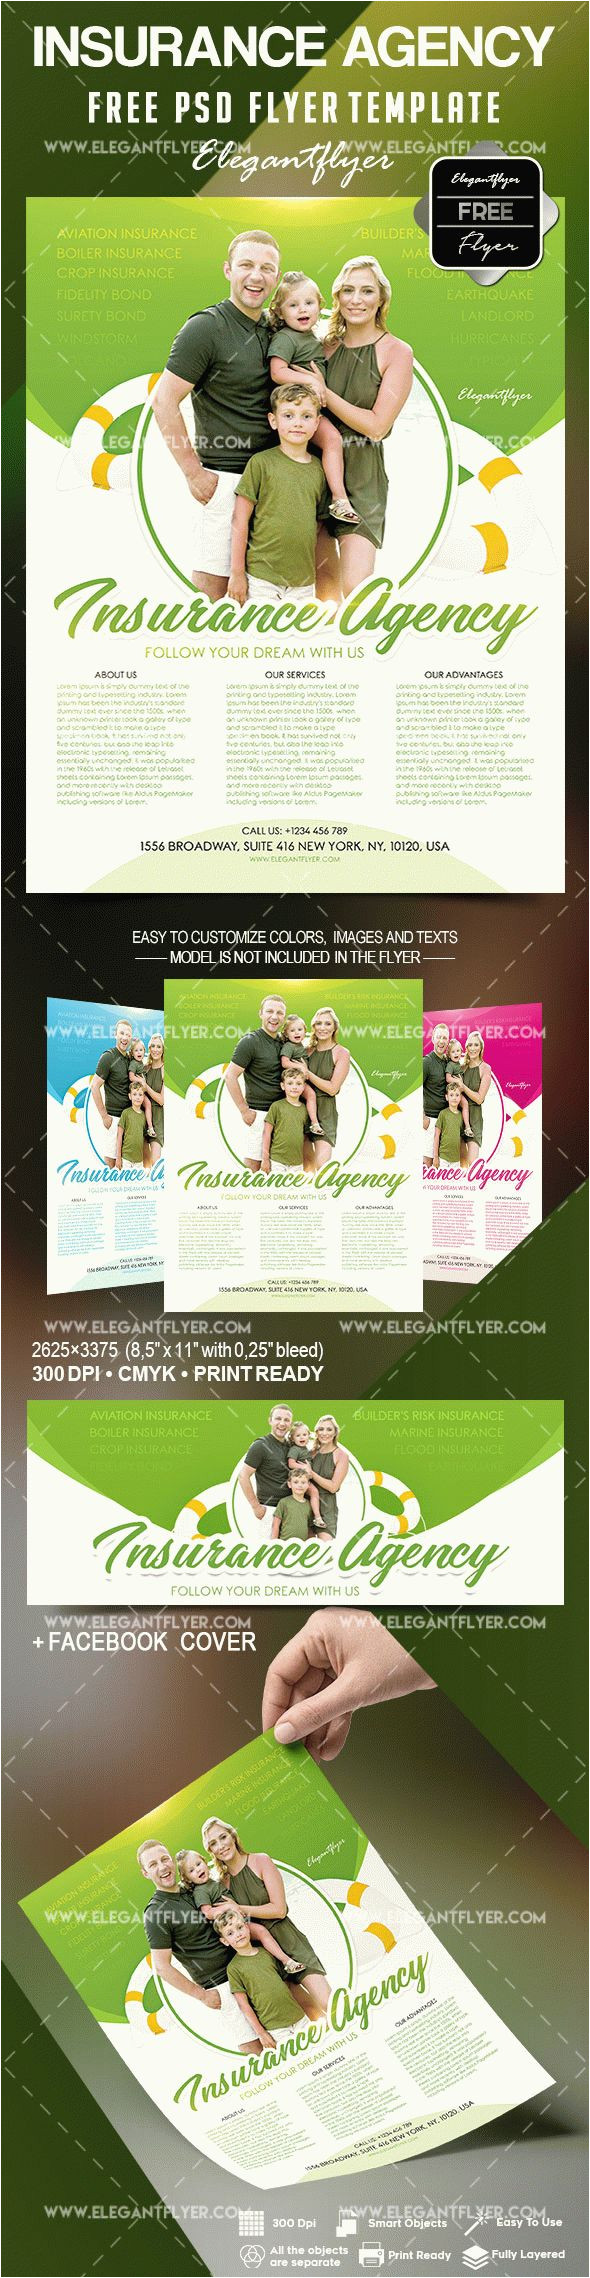 free insurance agency flyer template